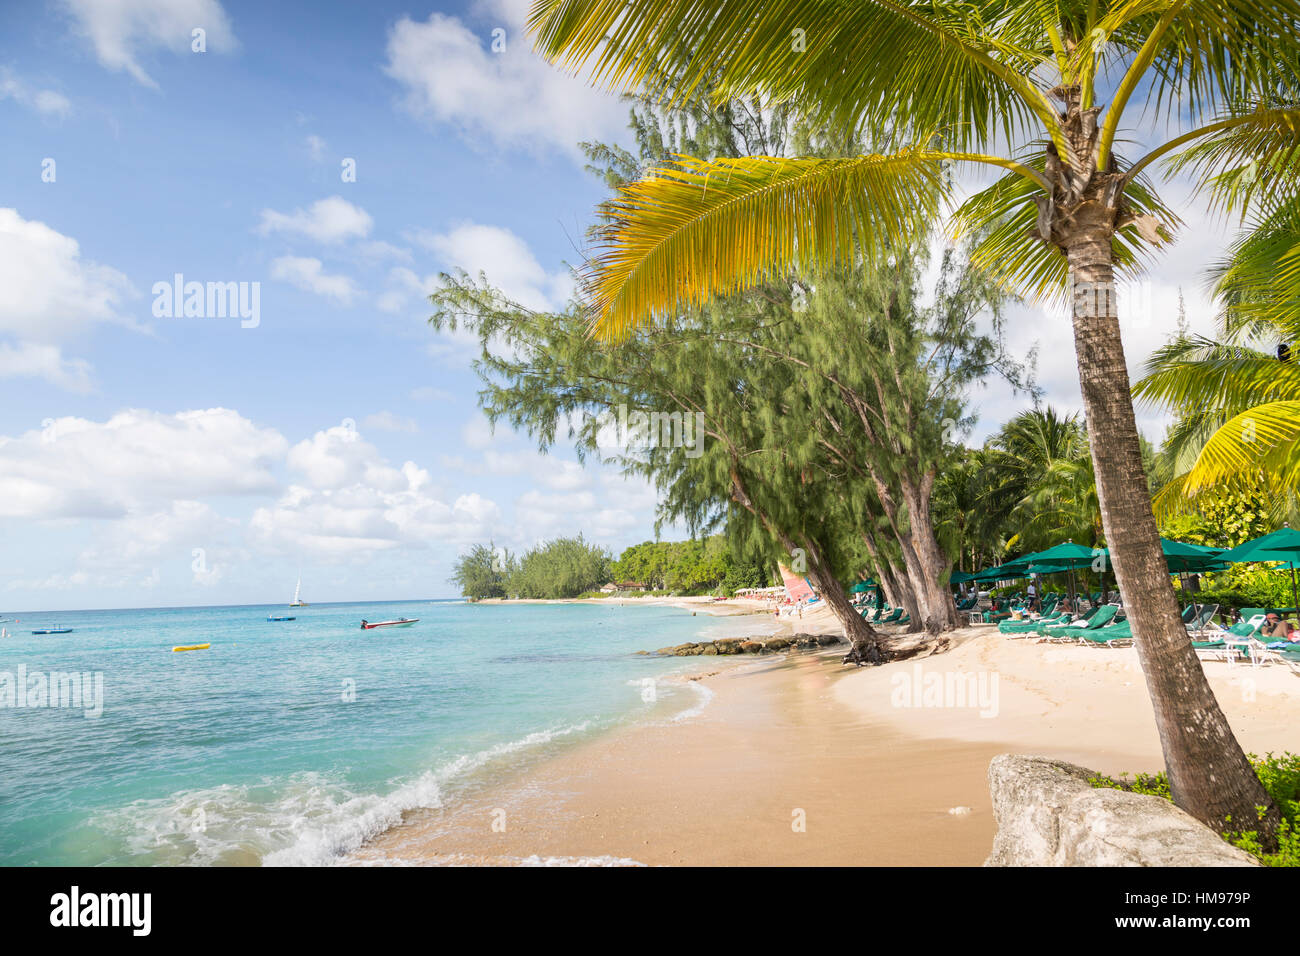 Beach, Holetown, St. James, Barbados, West Indies, Caribbean, Central America - Stock Image